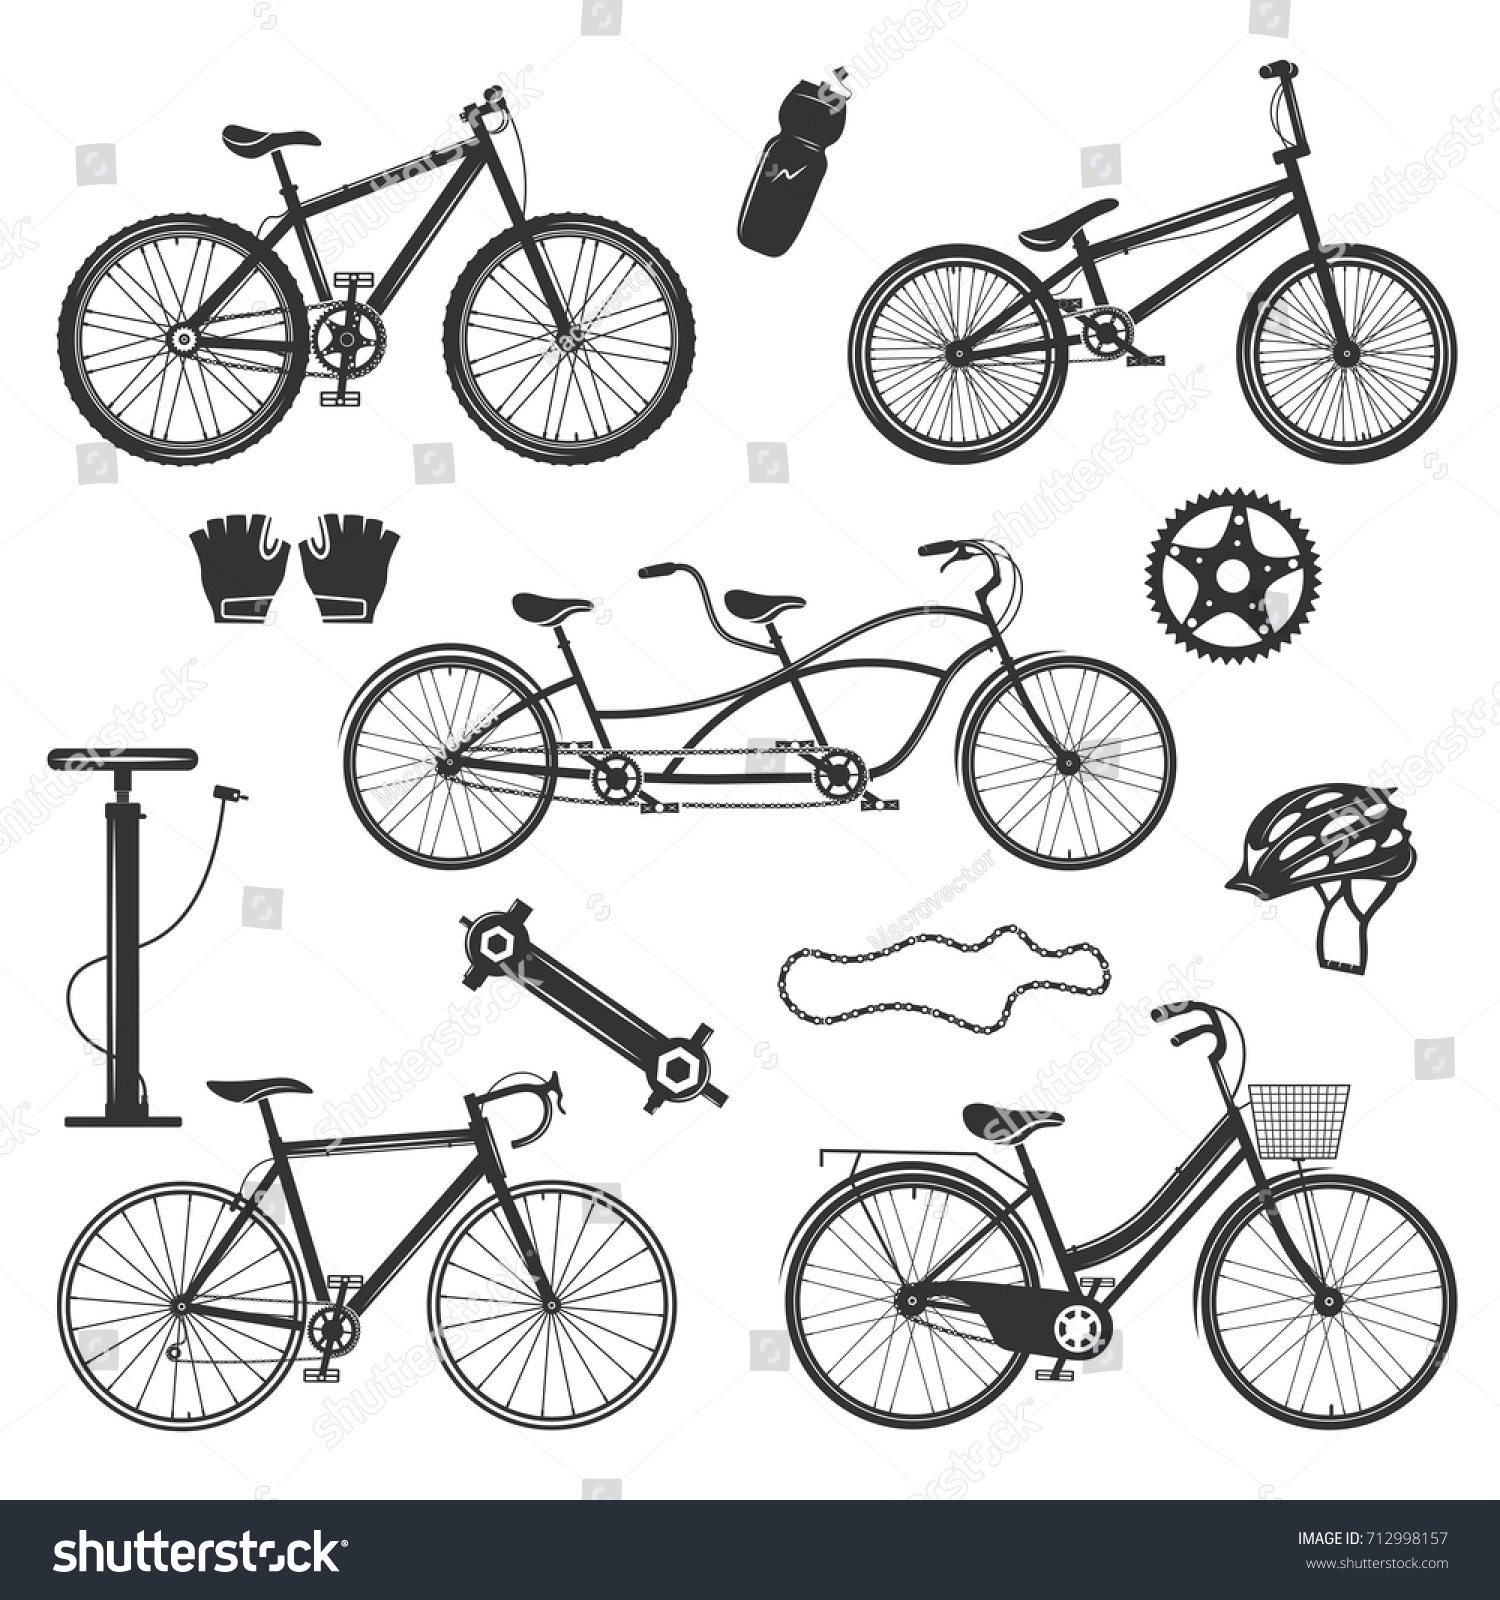 Bicycle Vintage Elements Collection Isolated Silhouette Stock